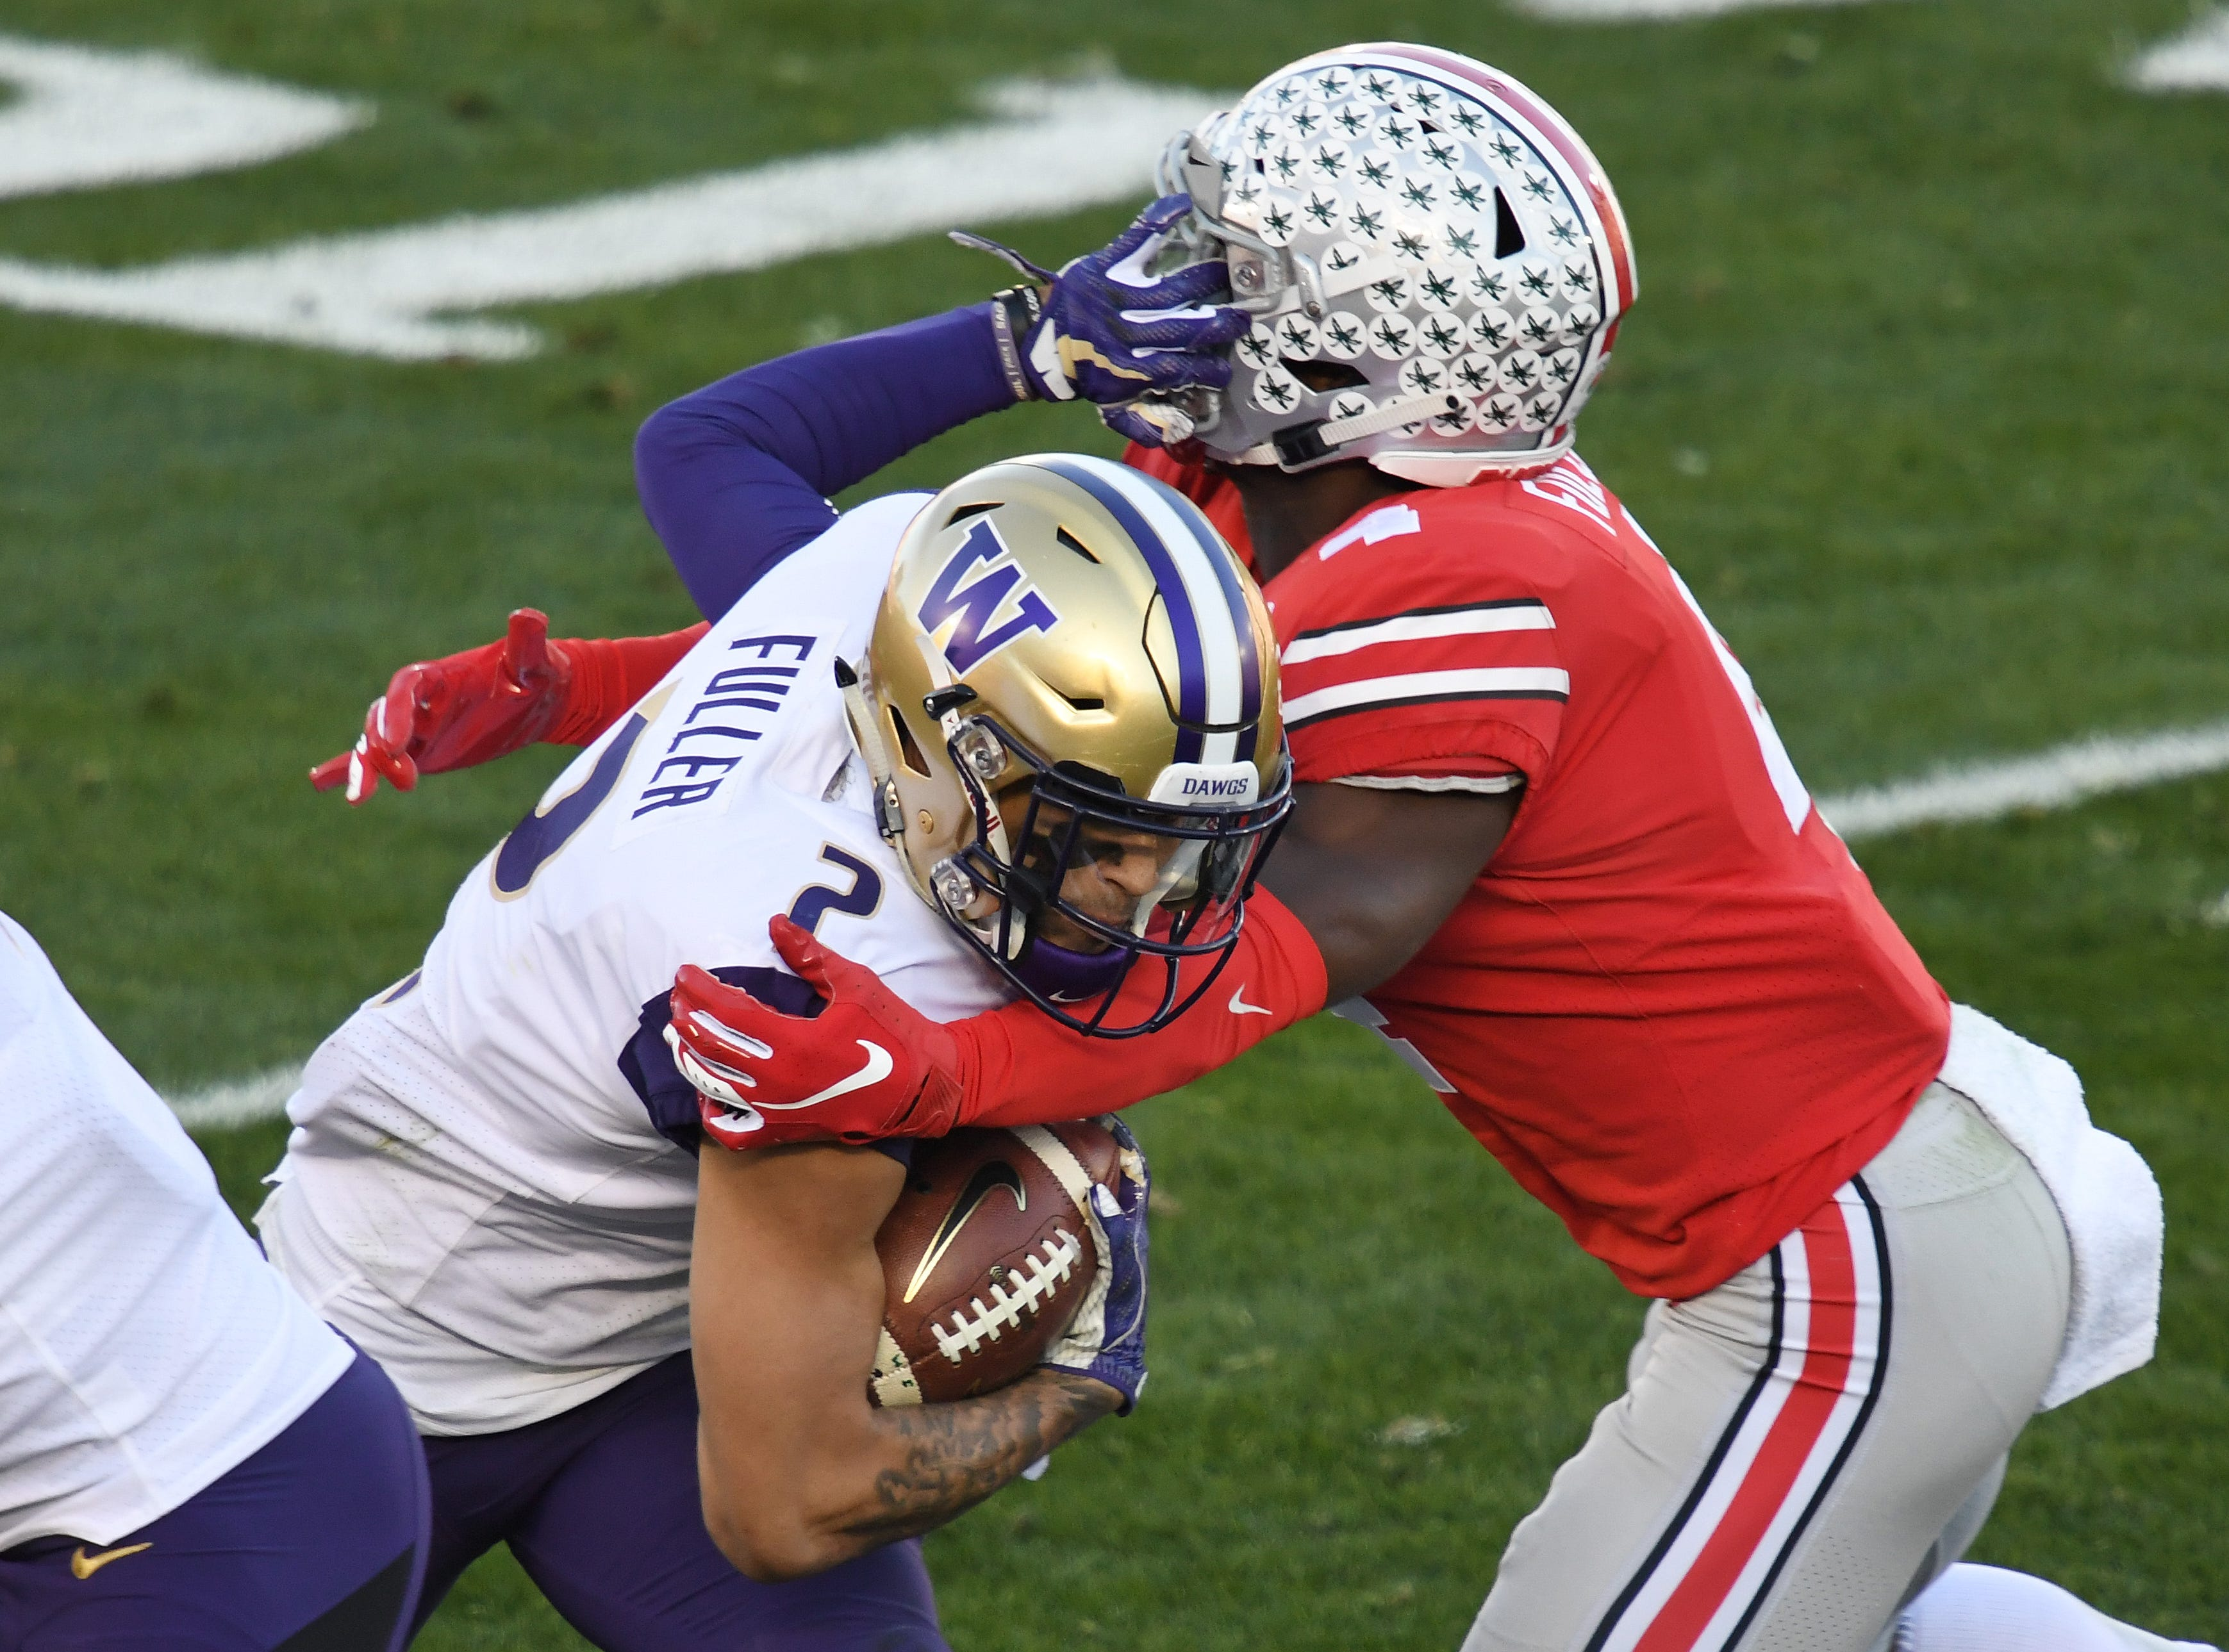 Washington Huskies wide receiver Aaron Fuller (2) runs against Ohio State Buckeyes safety Jordan Fuller (4) in the first half of the Rose Bowl.